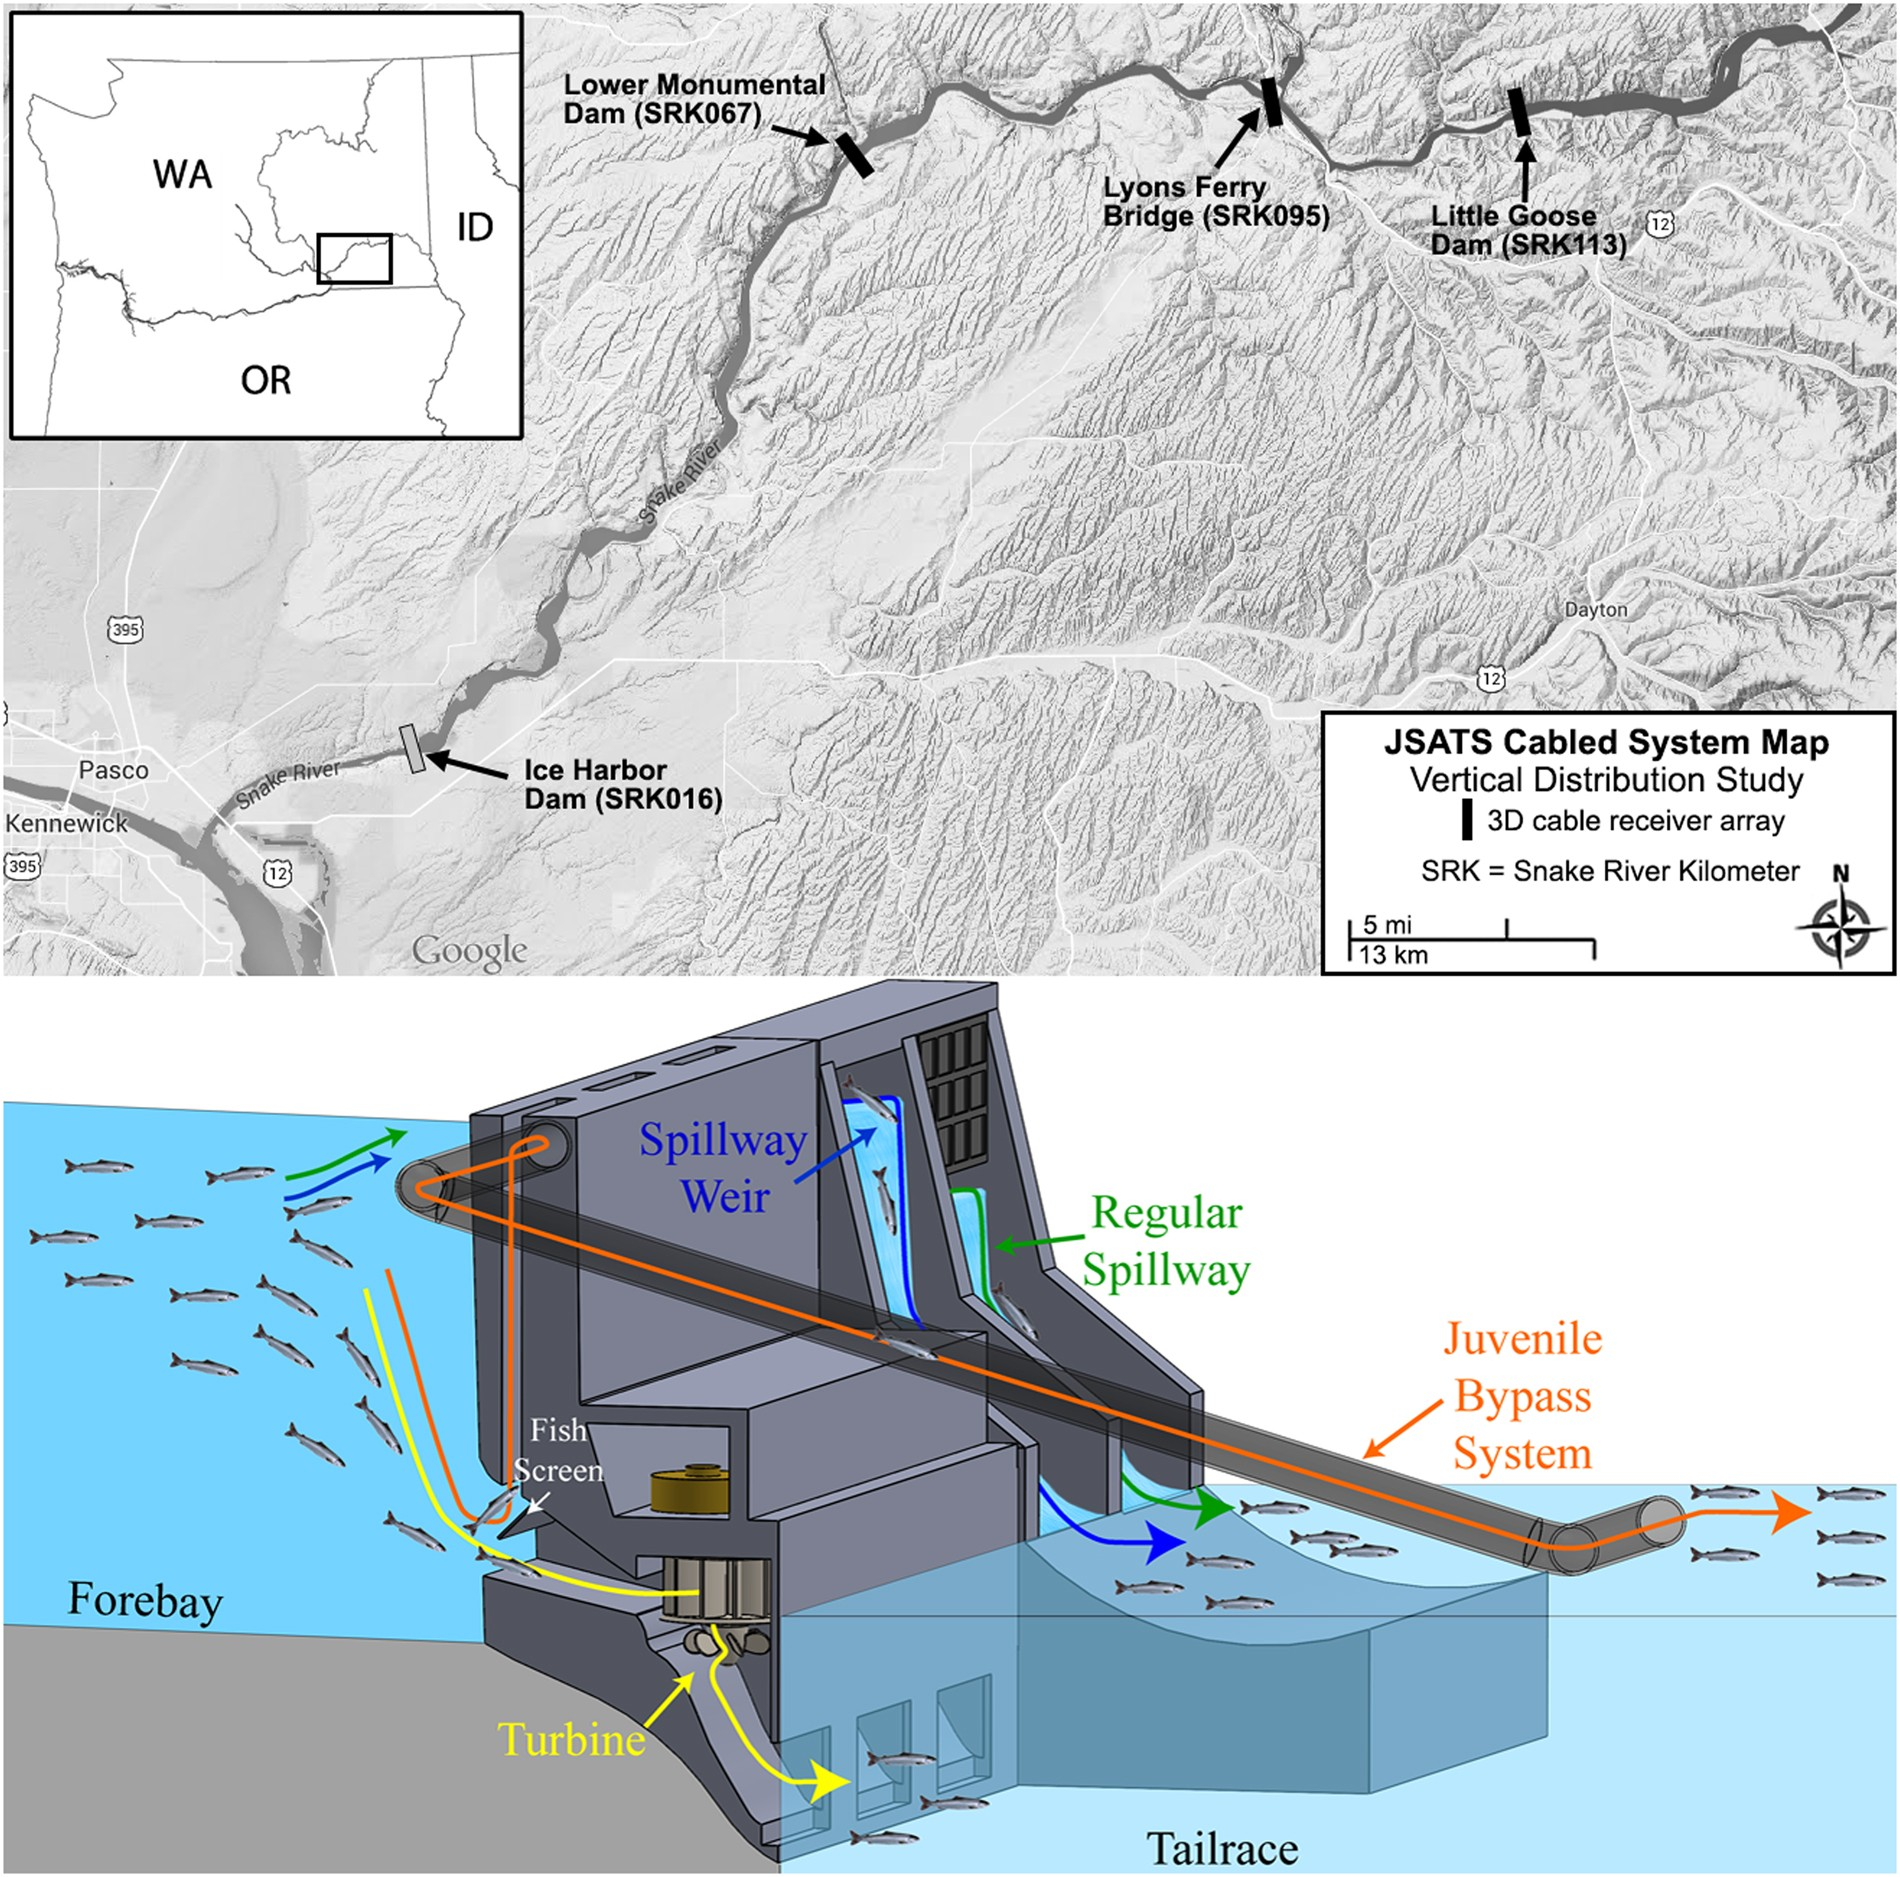 three-dimensional migration behavior of juvenile salmonids in reservoirs  and near dams | scientific reports